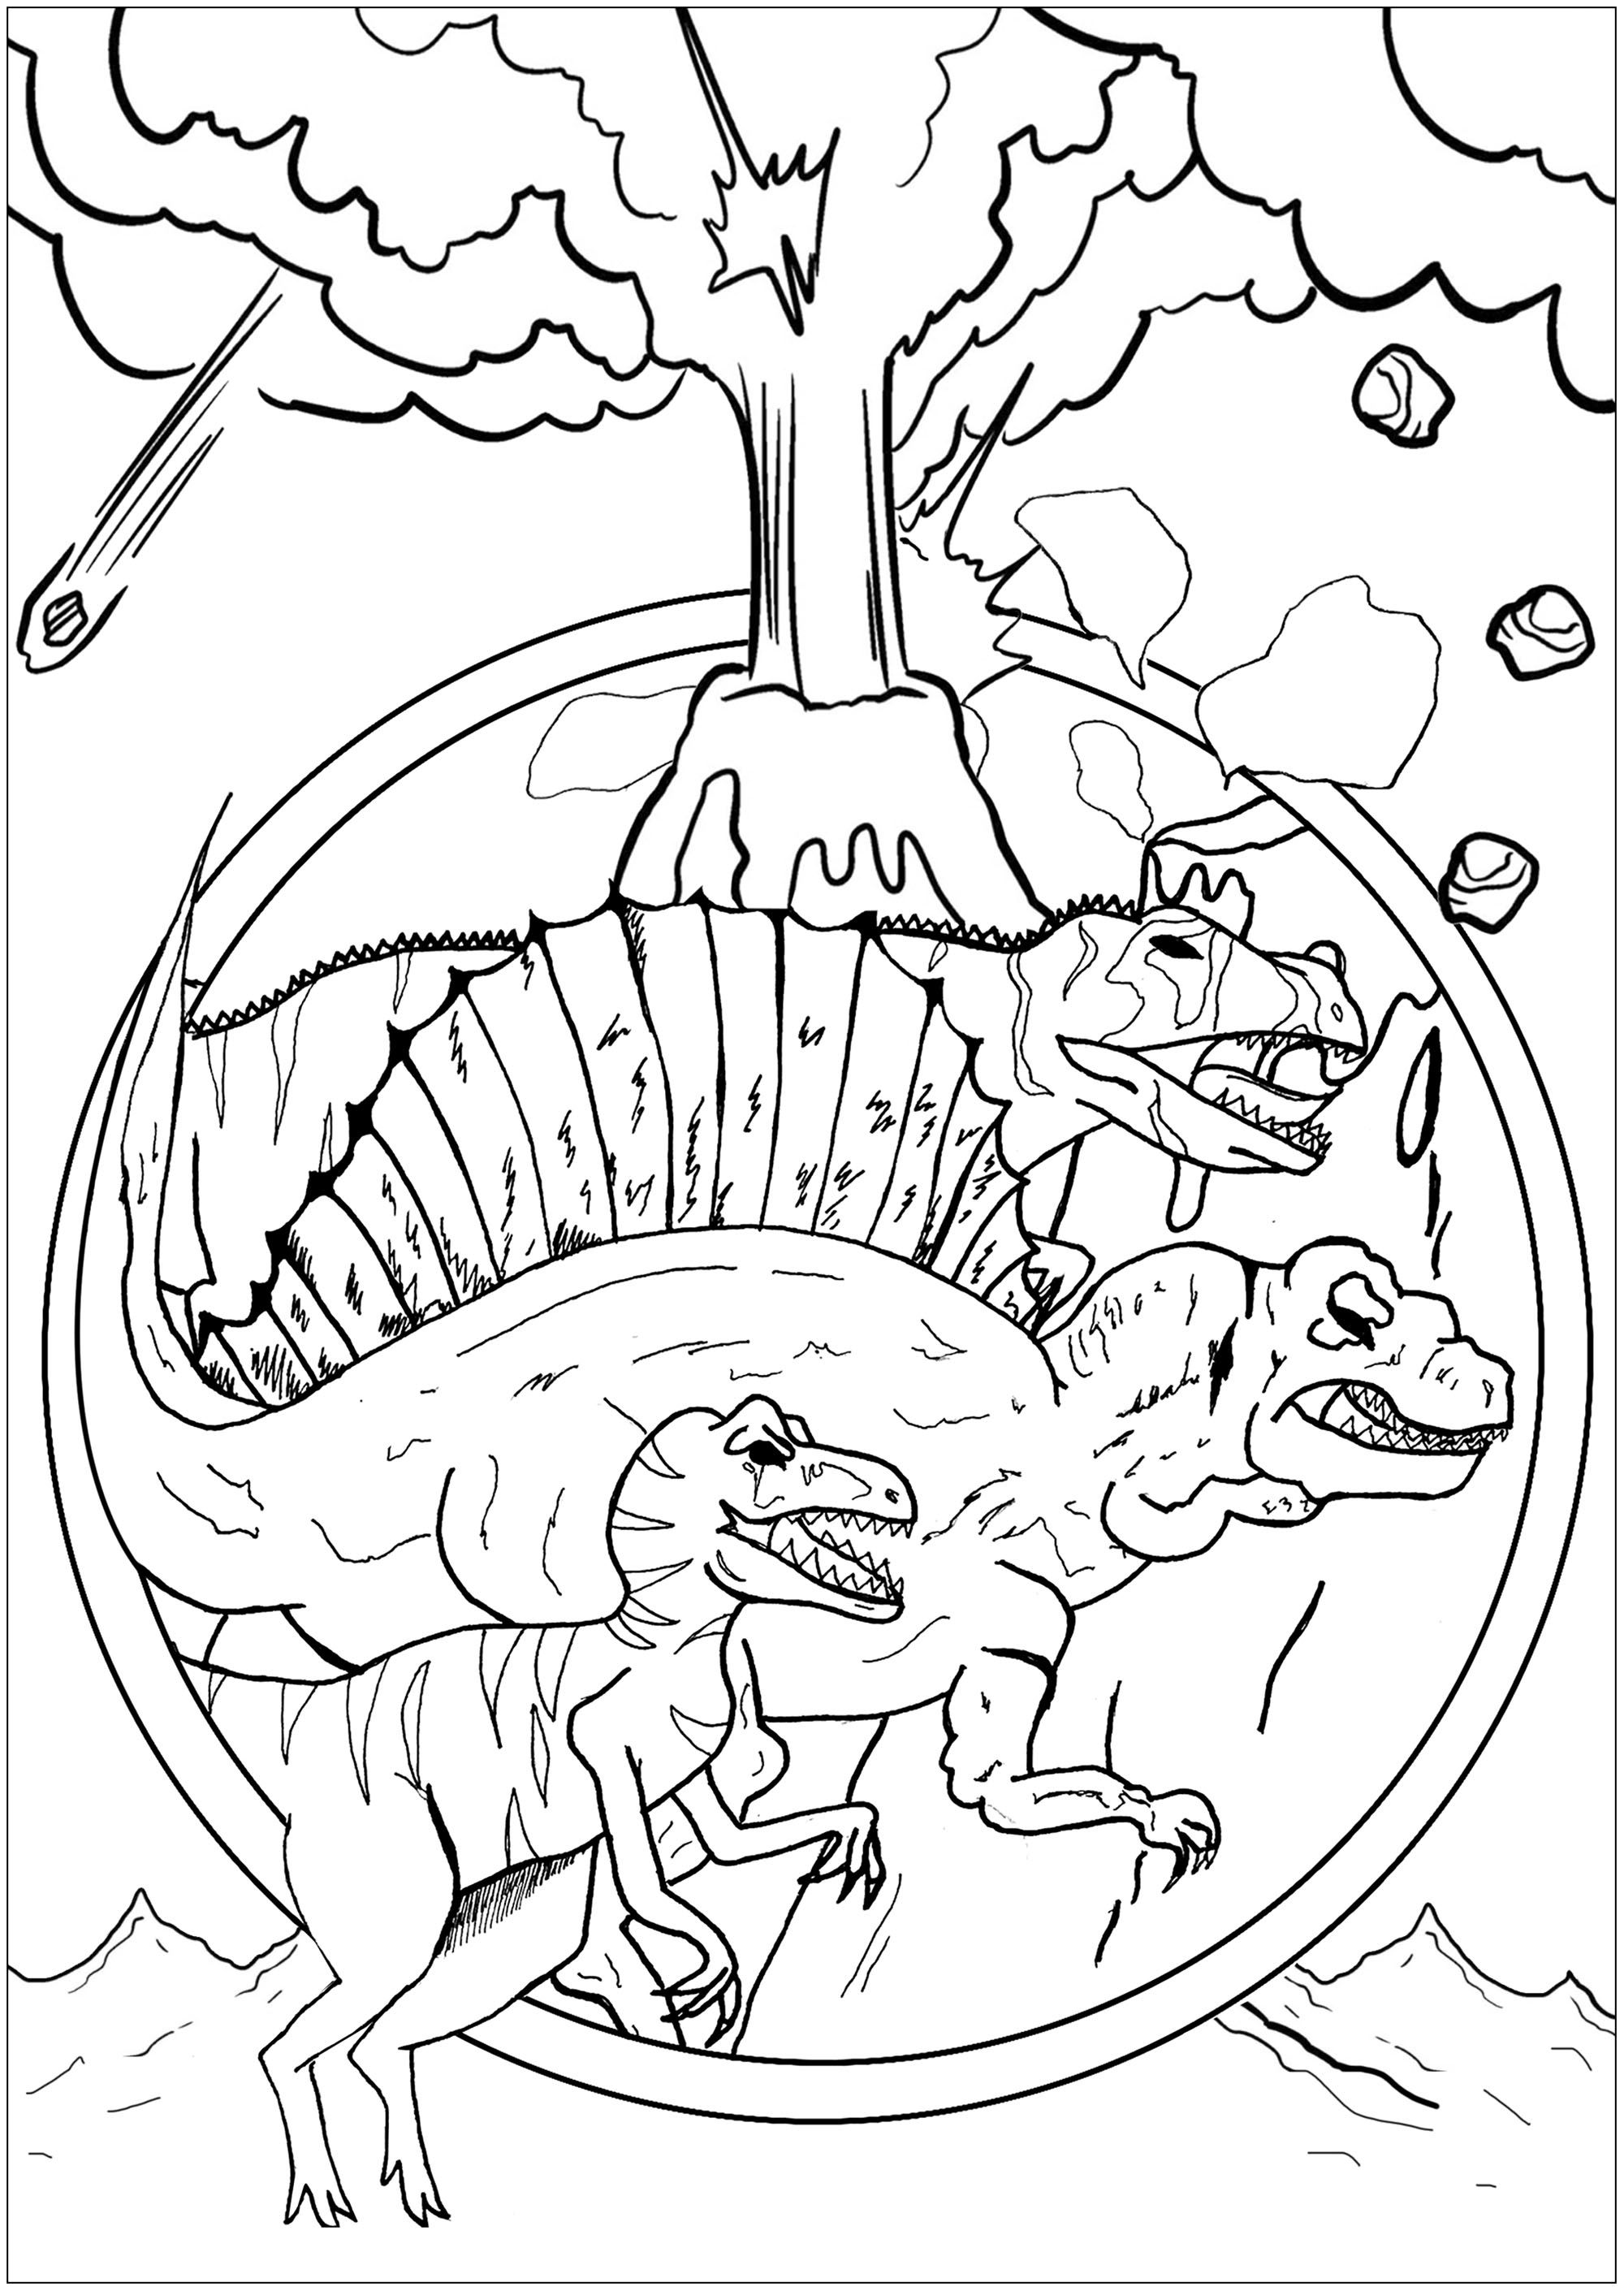 Free Volcano Coloring Pages For Kids Dinosaur Coloring Pages Coloring Pages Dinosaur Coloring Sheets